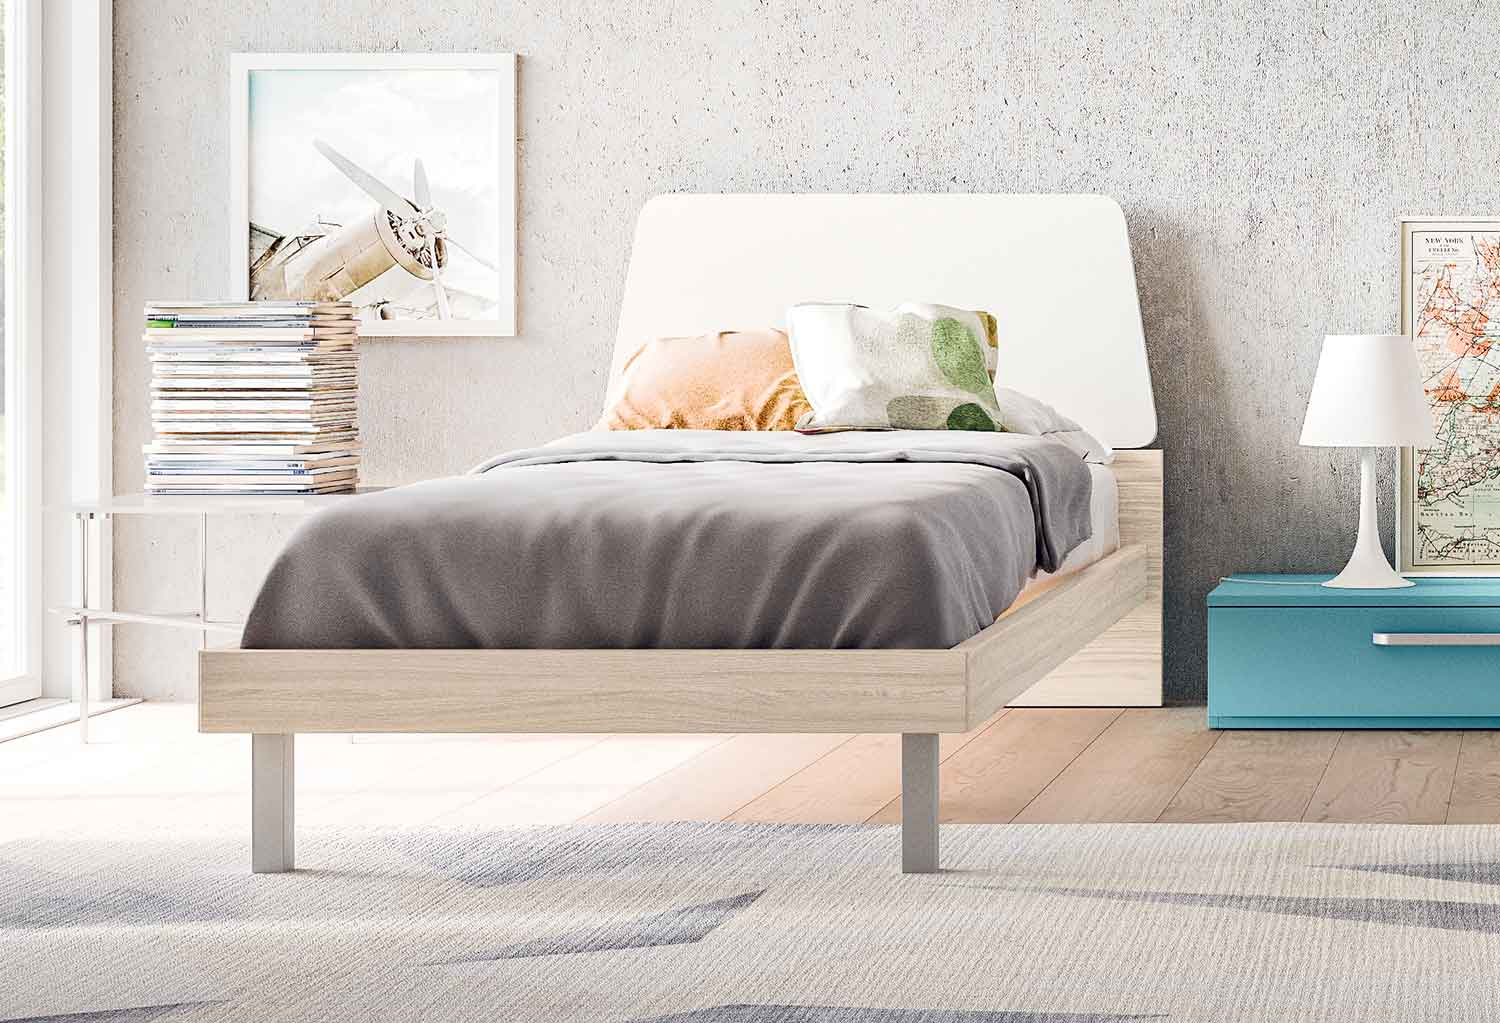 The Terry modern single bed brings a simple yet sophisticated design to your kids' bedroom